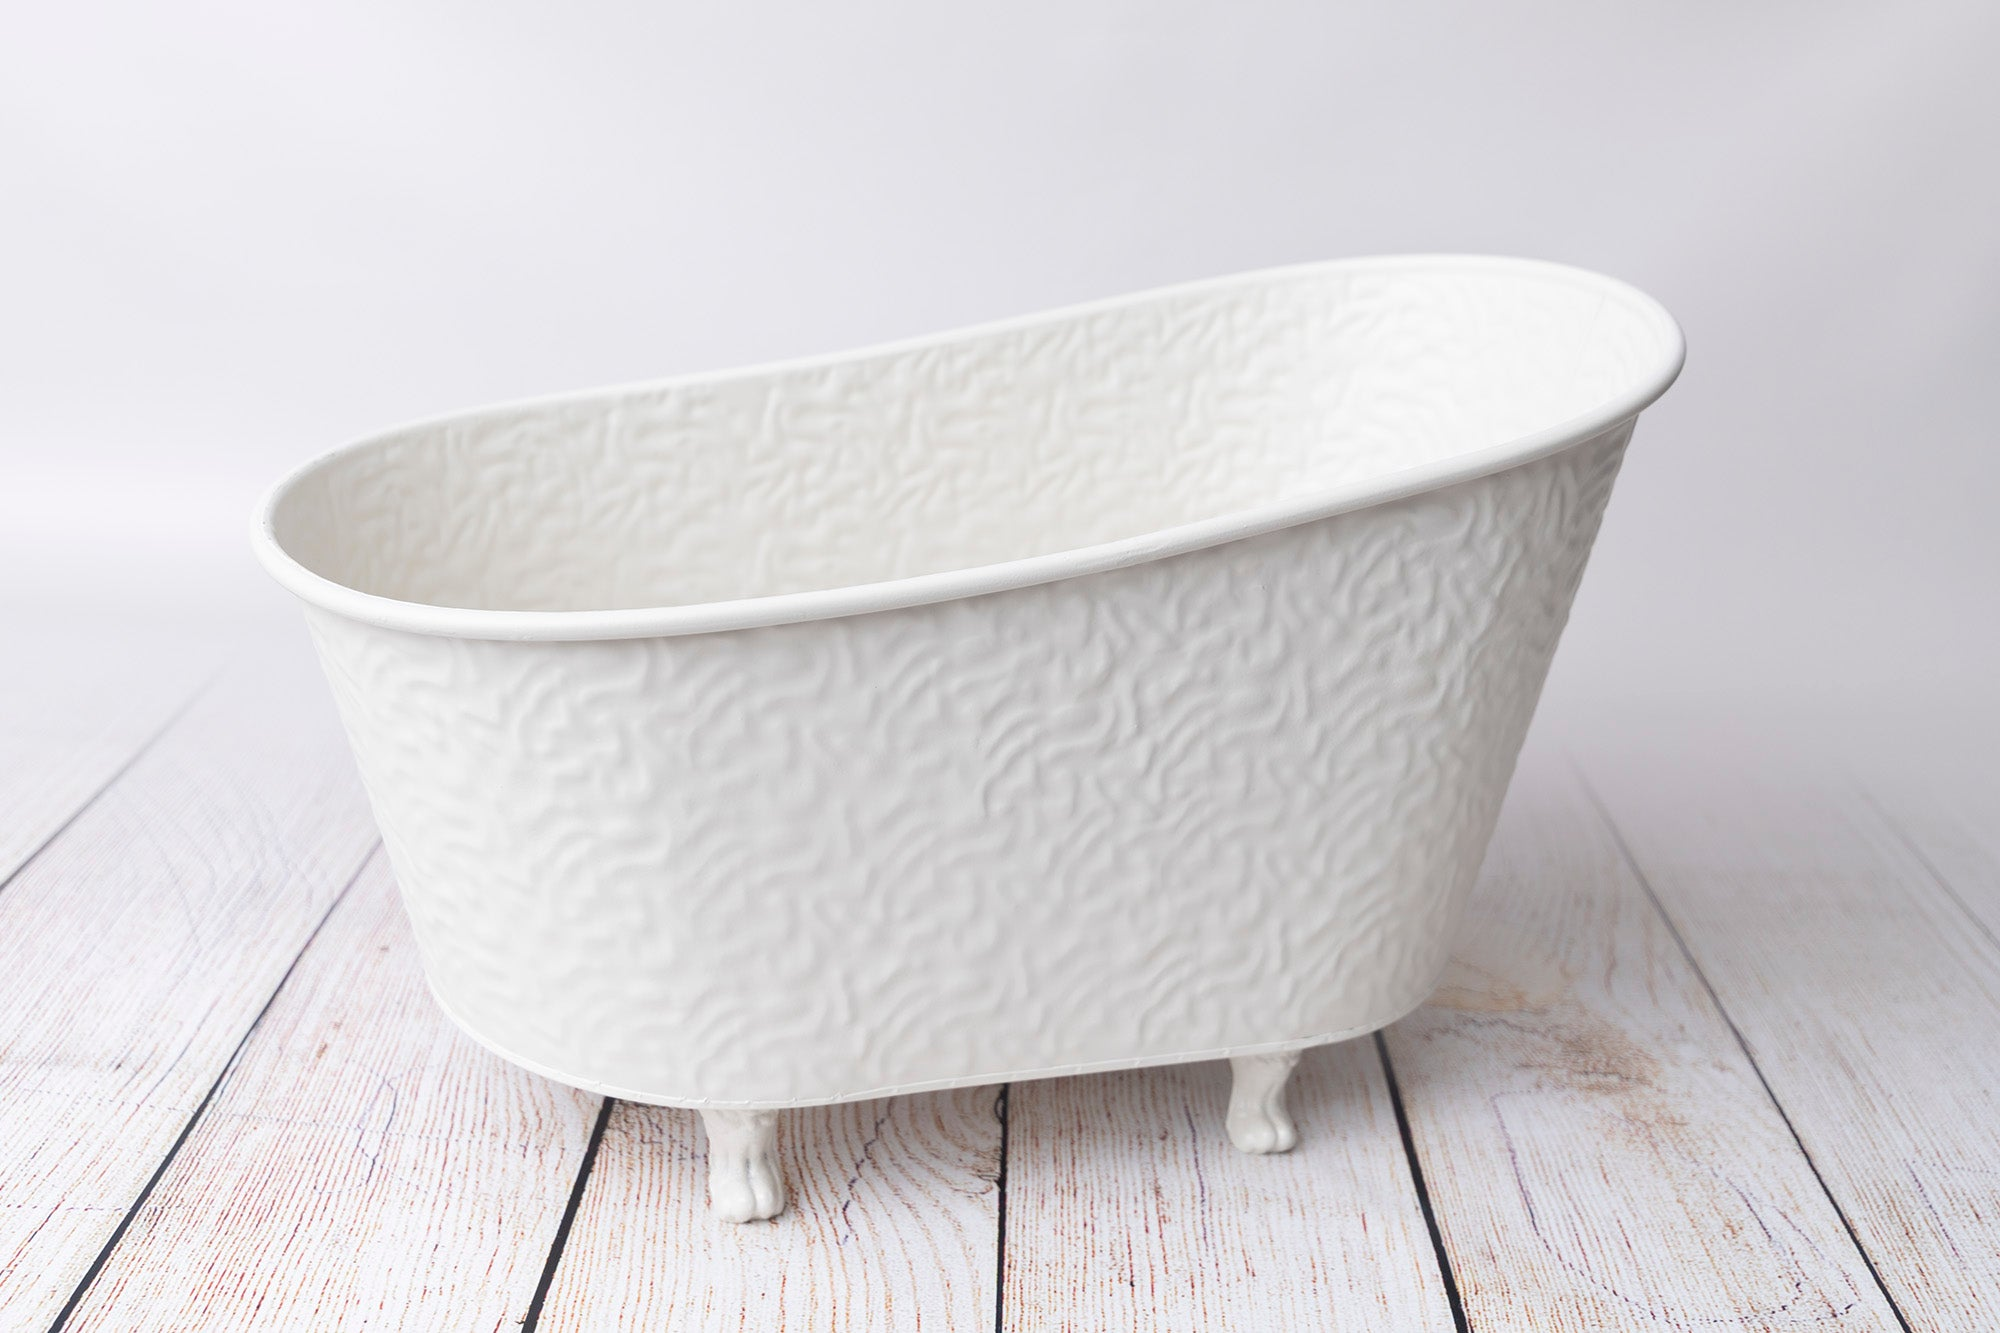 Footed Vintage Bathtub - Bumpy Textured - White - Model 2